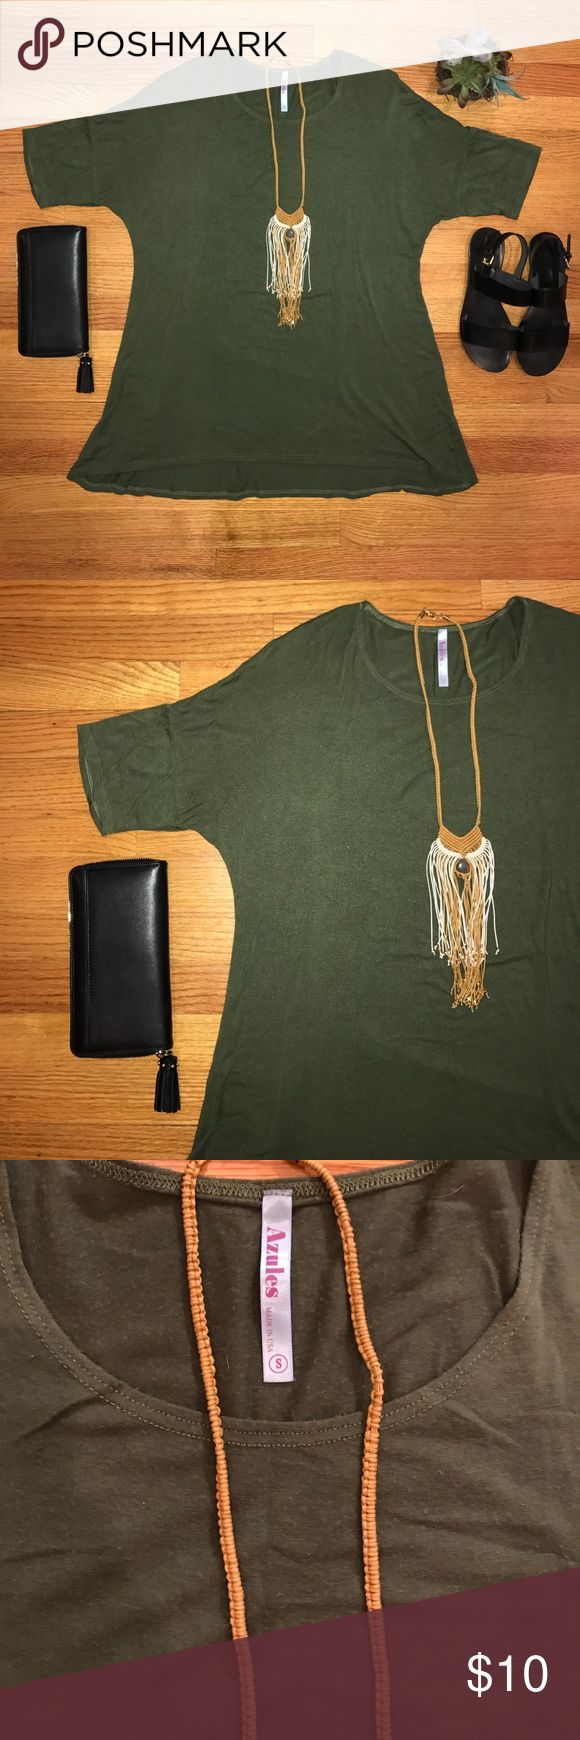 Hunter Green Short Sleeve Top Hunter Green Short Sleeve Top, azules size small, good used condition, no holes or rips, one of the most comfortable shirts! azules Tops Tees - Short Sleeve